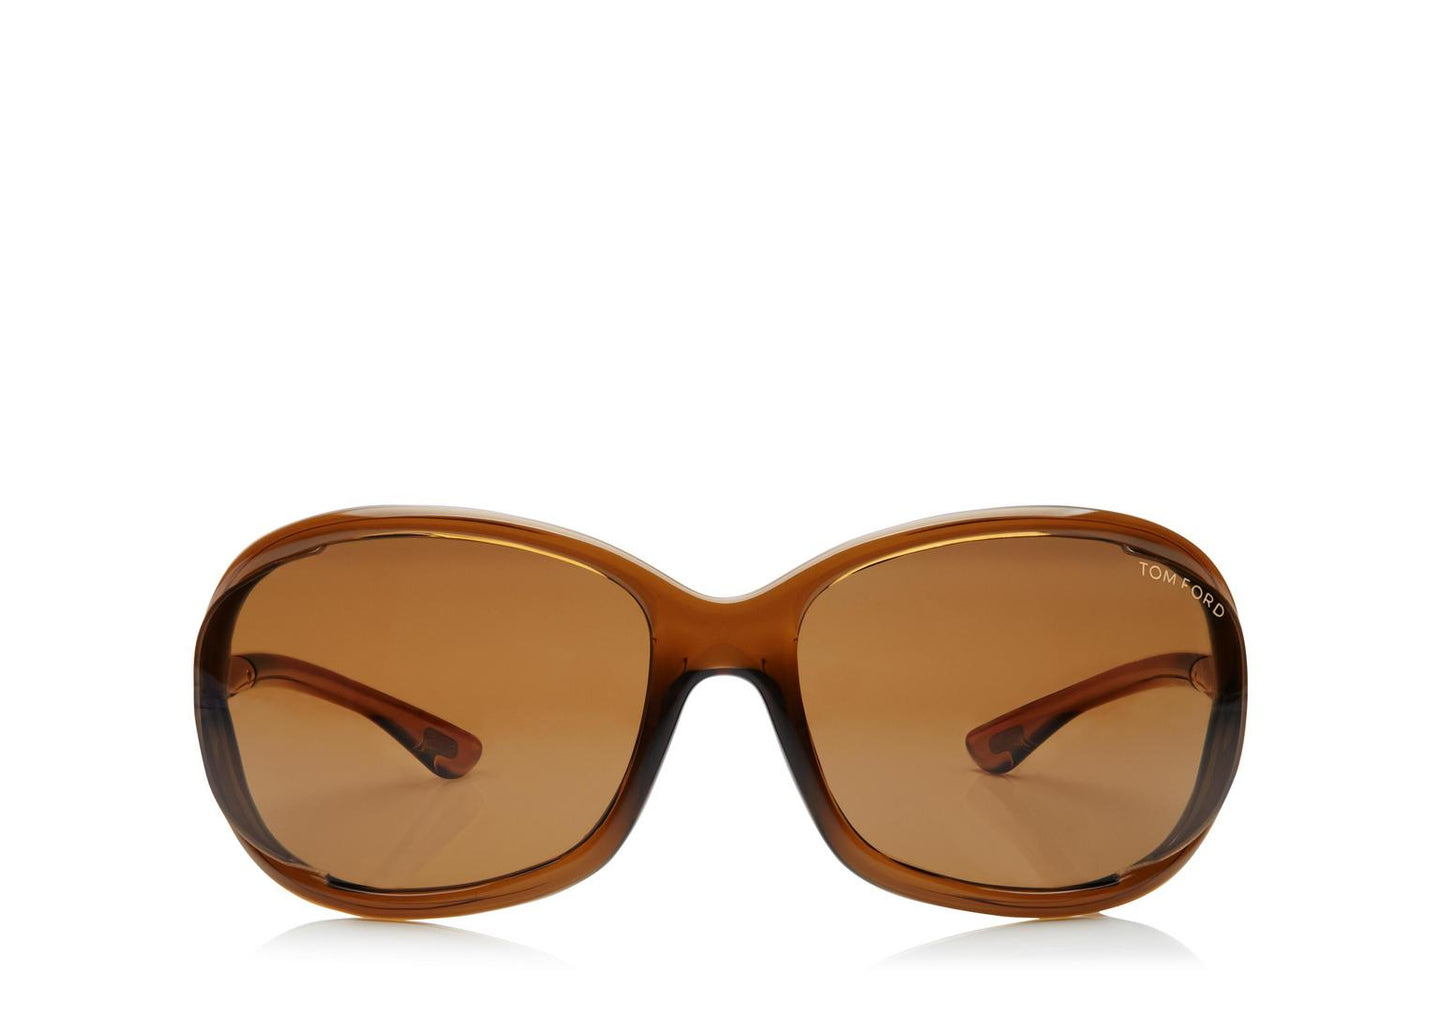 shades-of-charleston - Jennifer - Tom Ford - Sunglasses